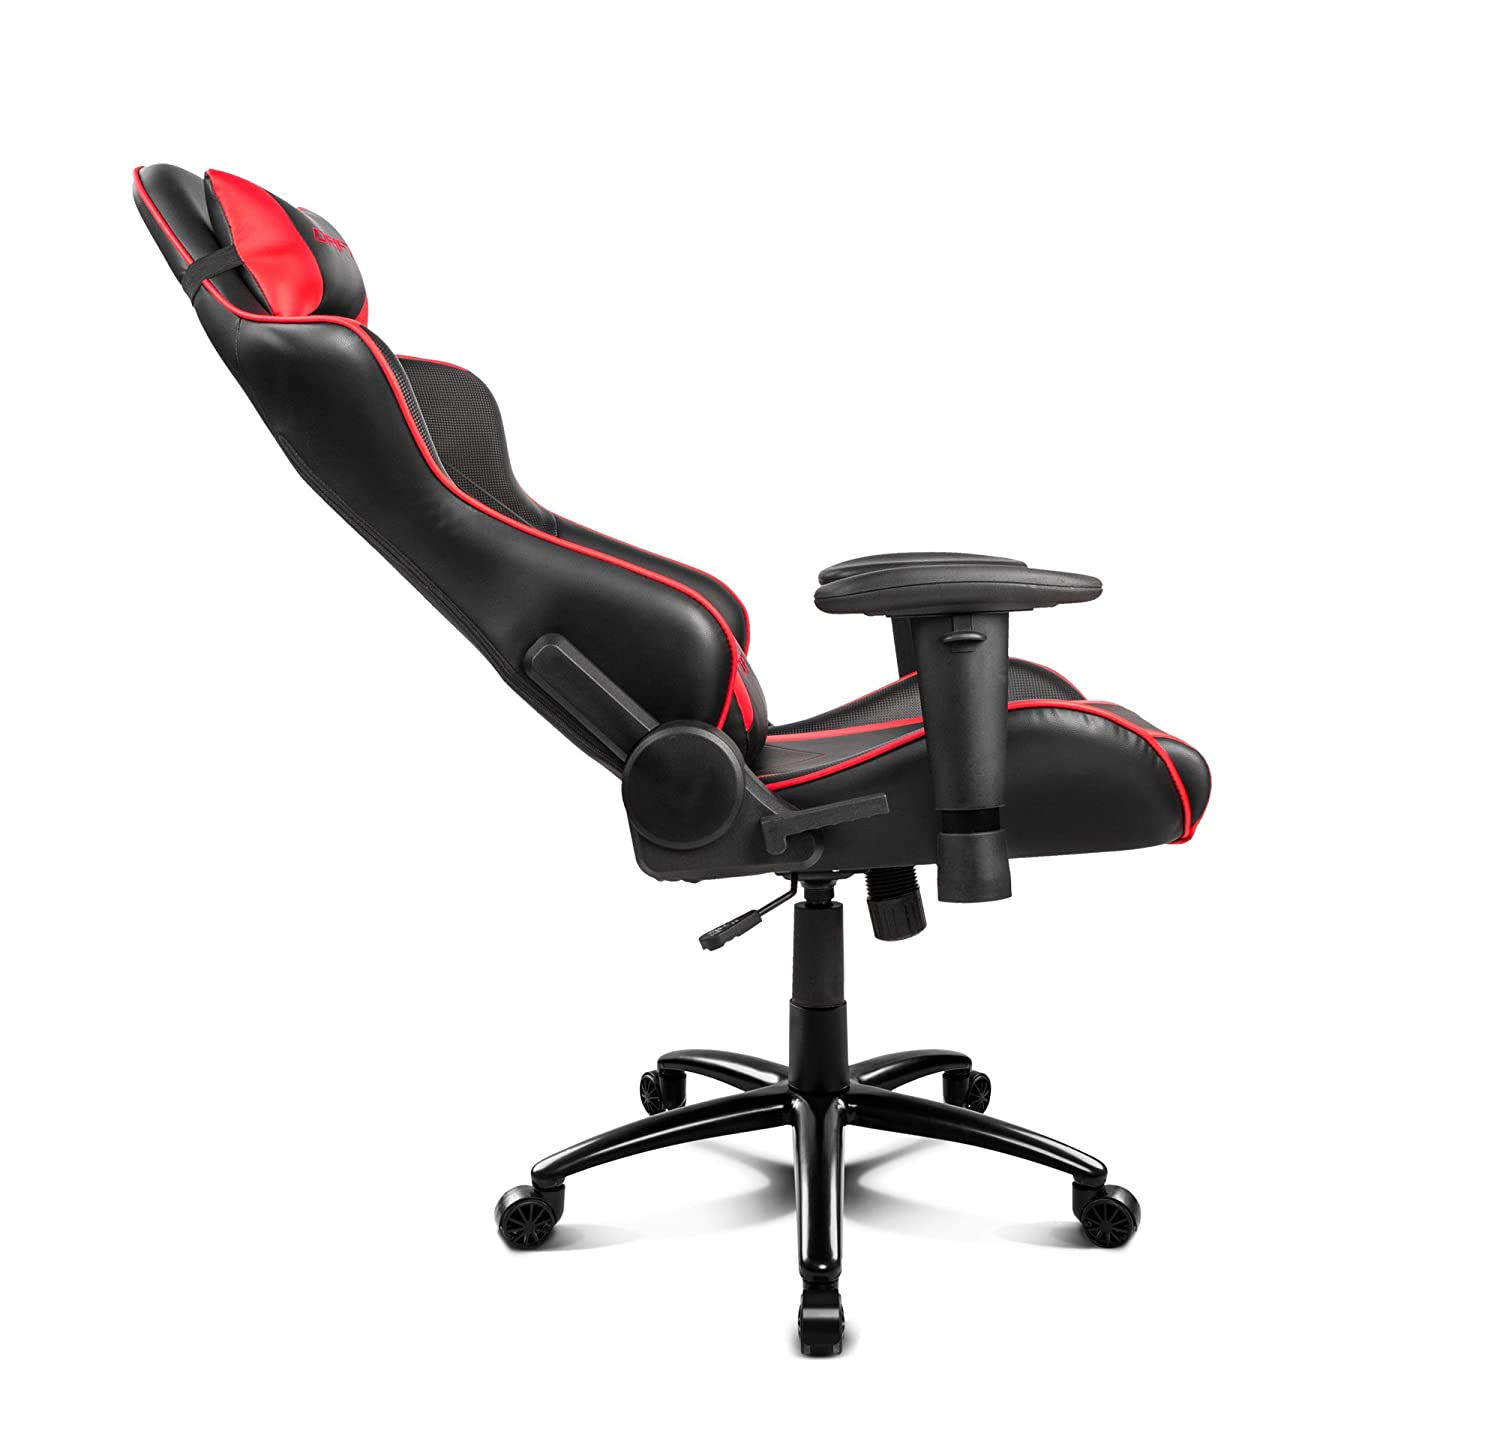 Amazon.com : Drift Gaming dr150br - Chair, Red : Office Products